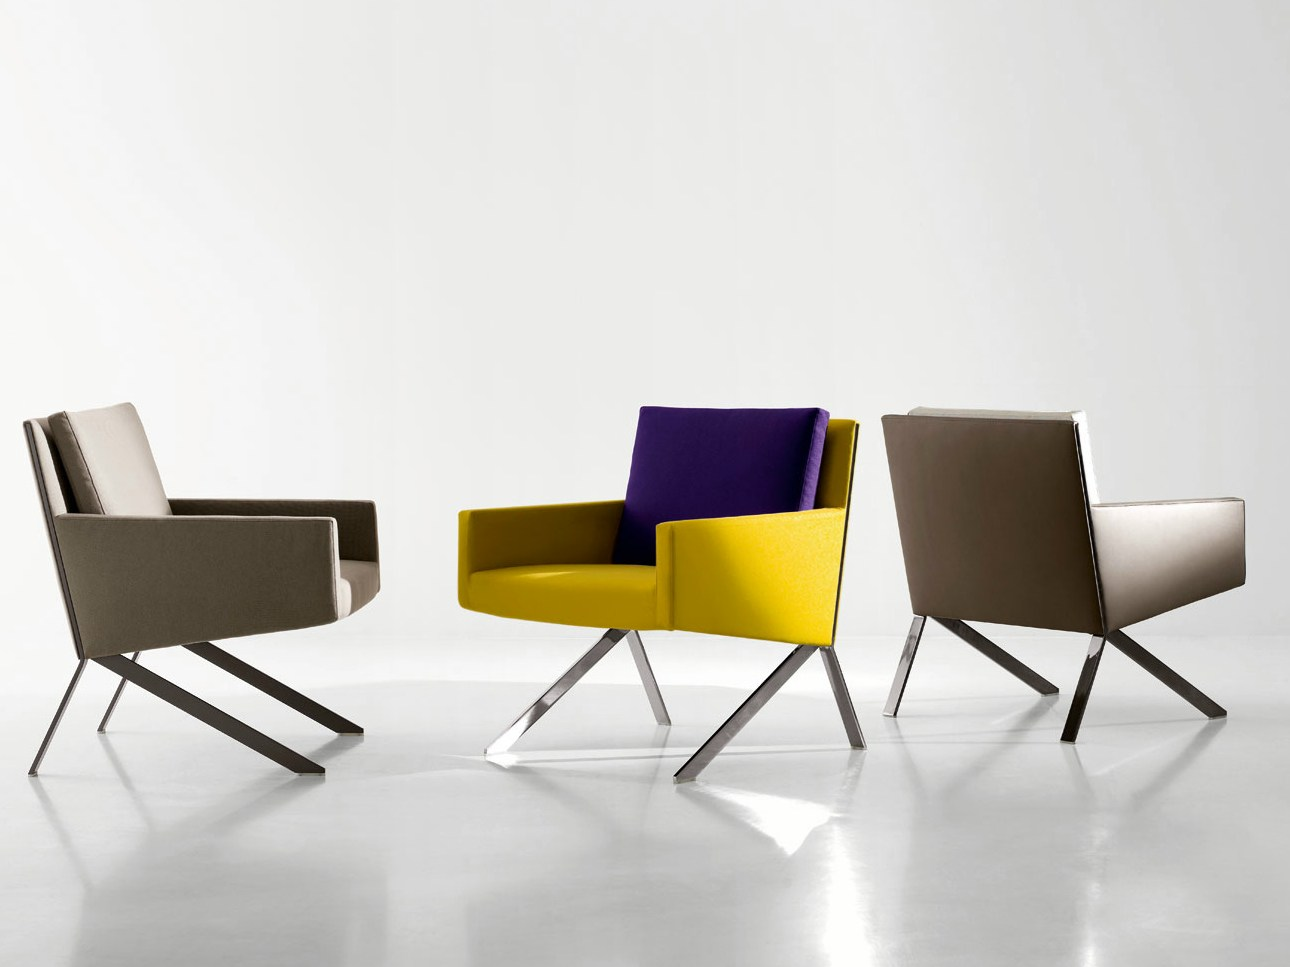 Upholstered fabric armchair with armrests theo theo collection by b b italia design vincent - B b italia design ...